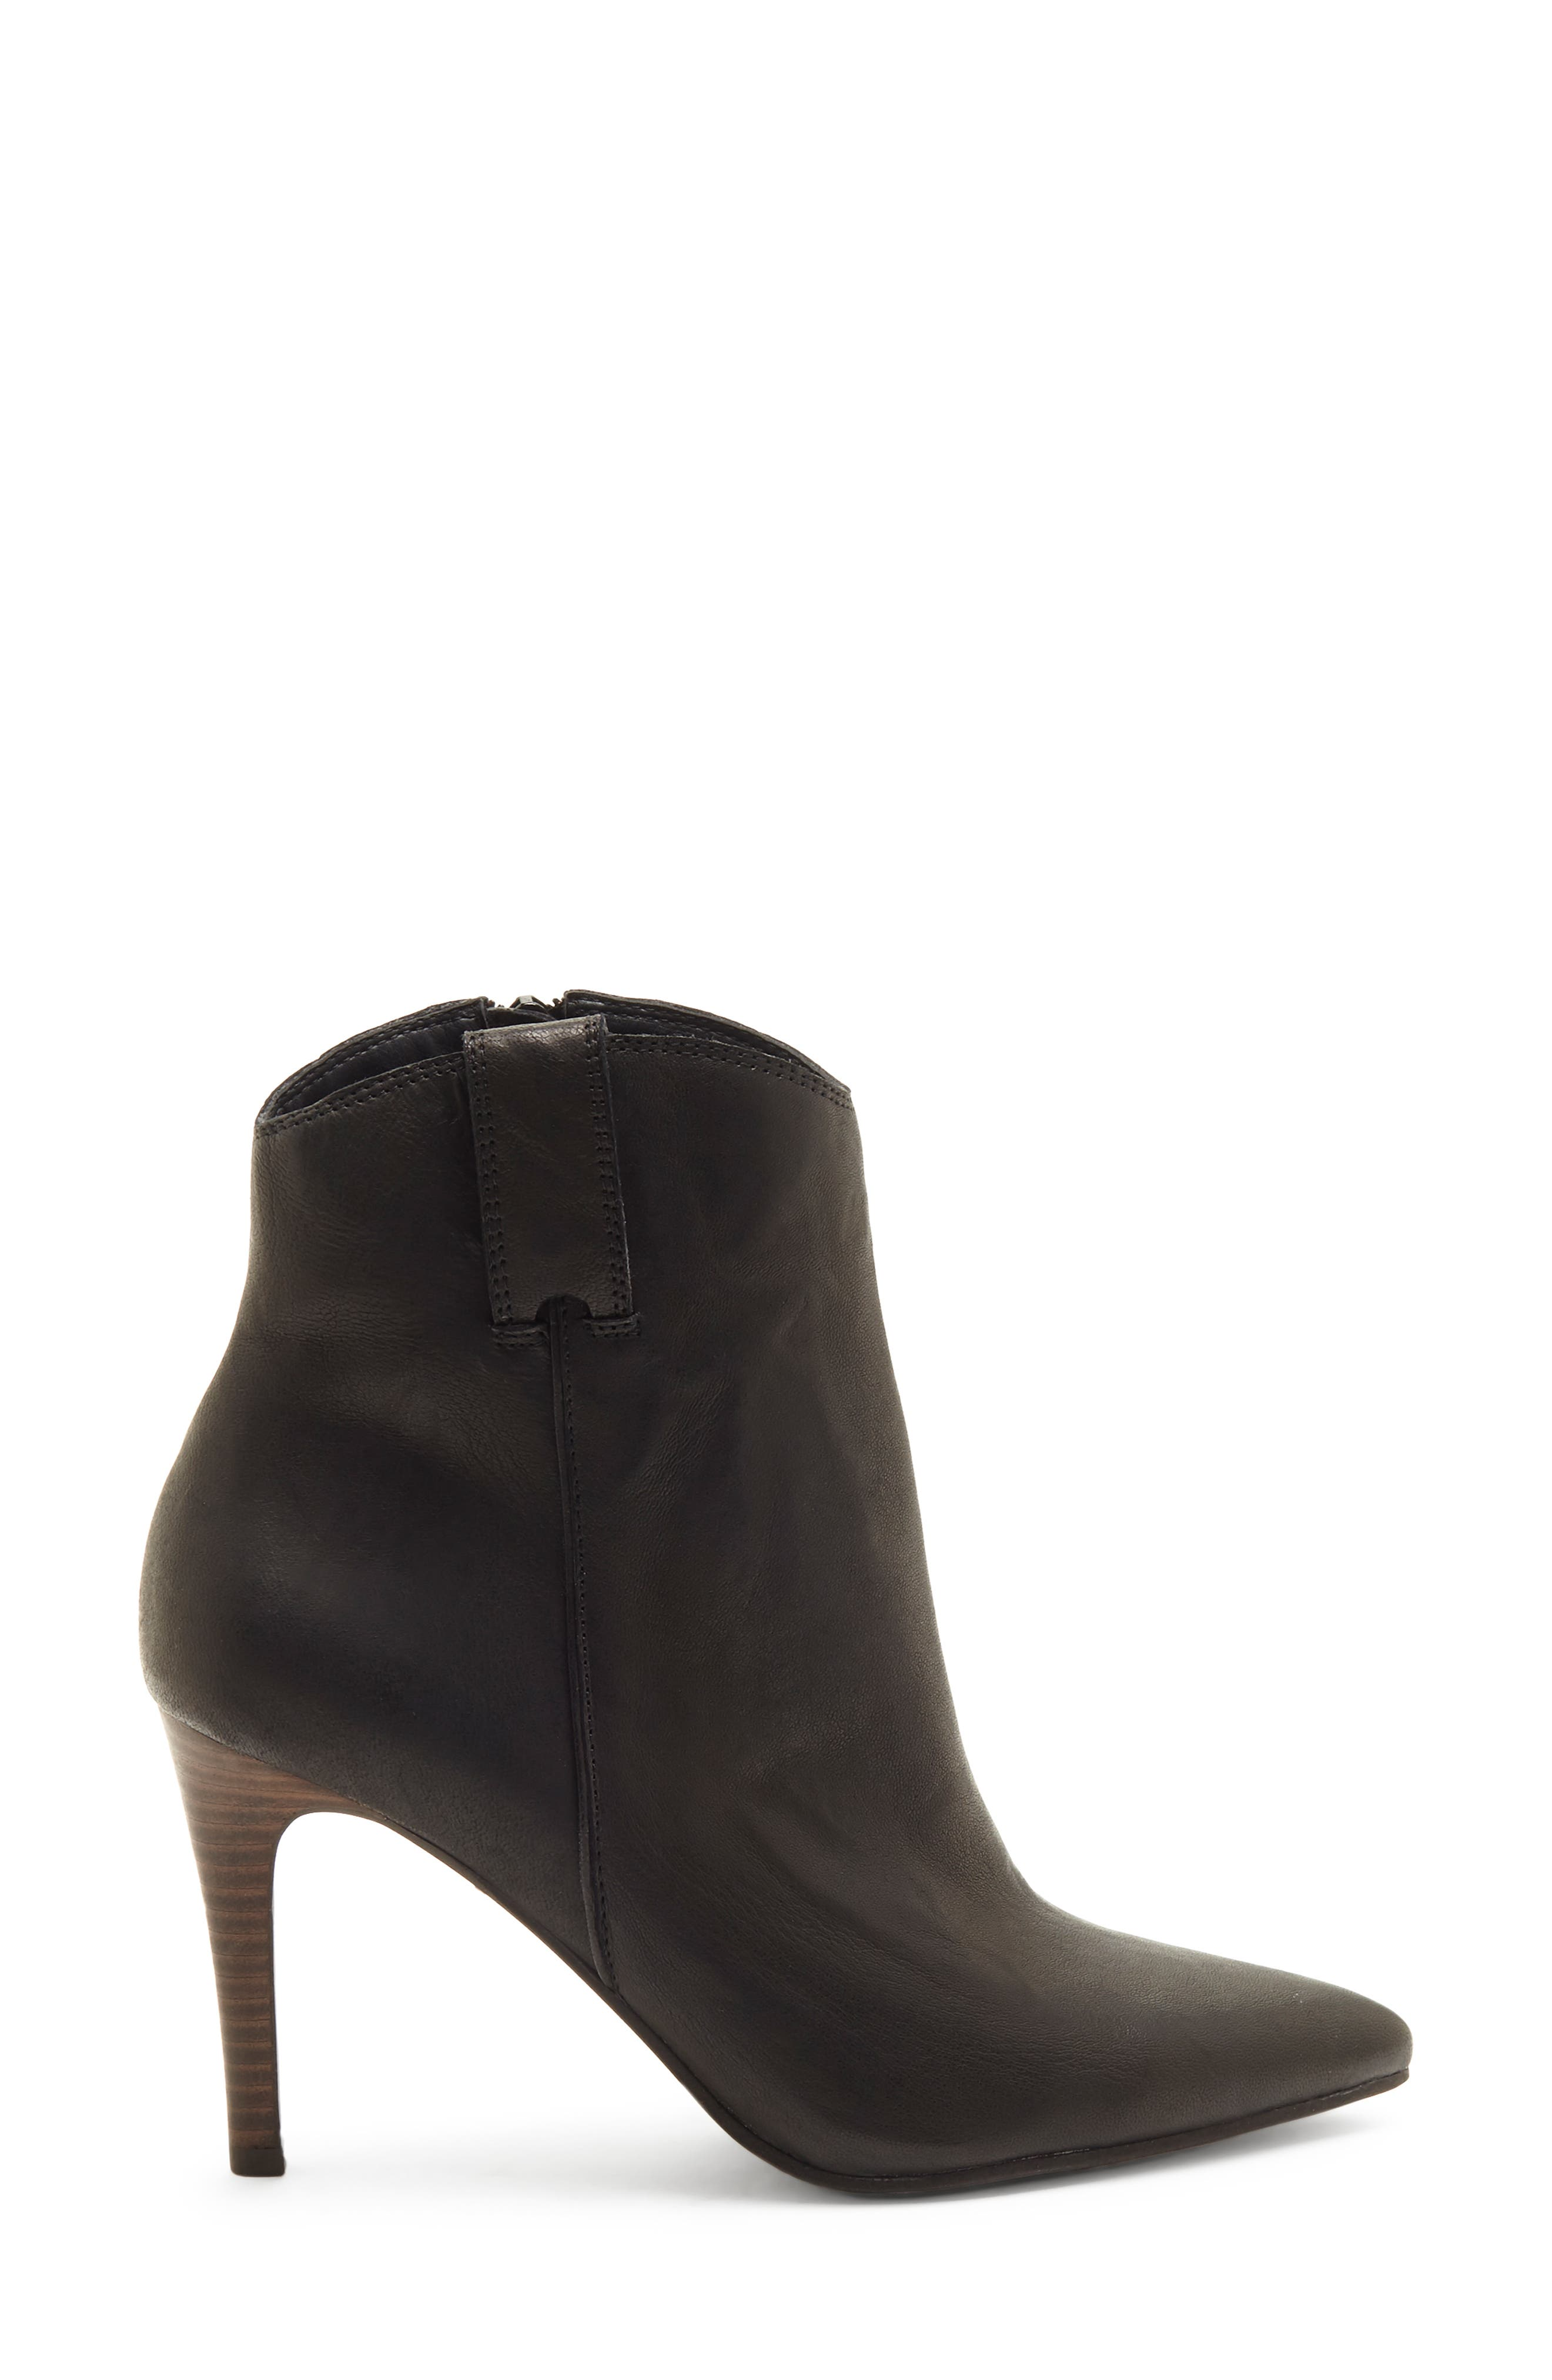 LUCKY BRAND,                             Torince Bootie,                             Alternate thumbnail 3, color,                             200